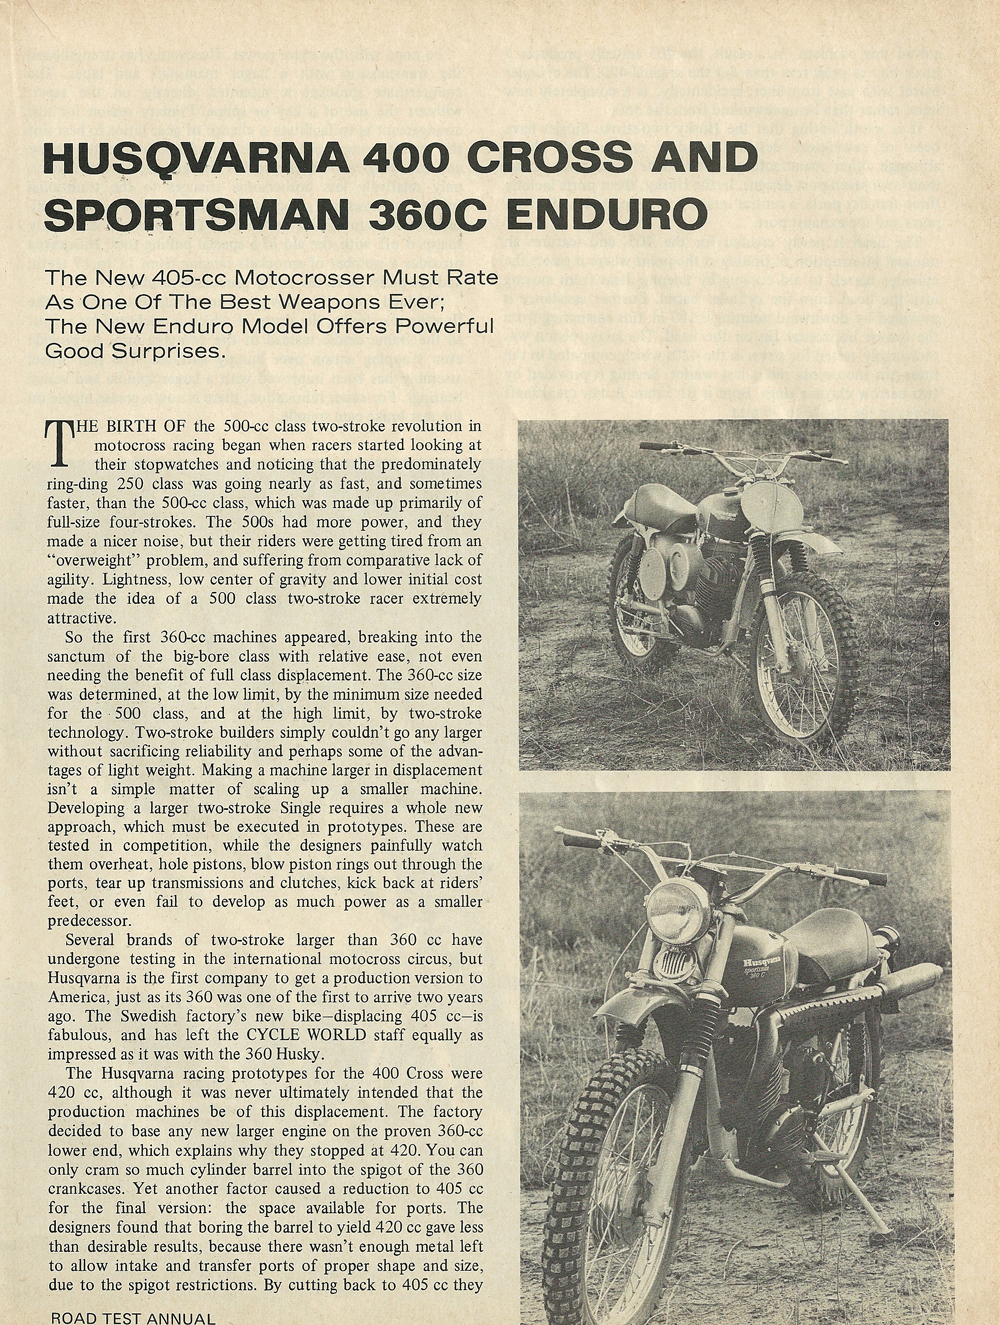 1969 Husqvarna 400 Cross and Sportsman 360C Enduro road test 2.jpg